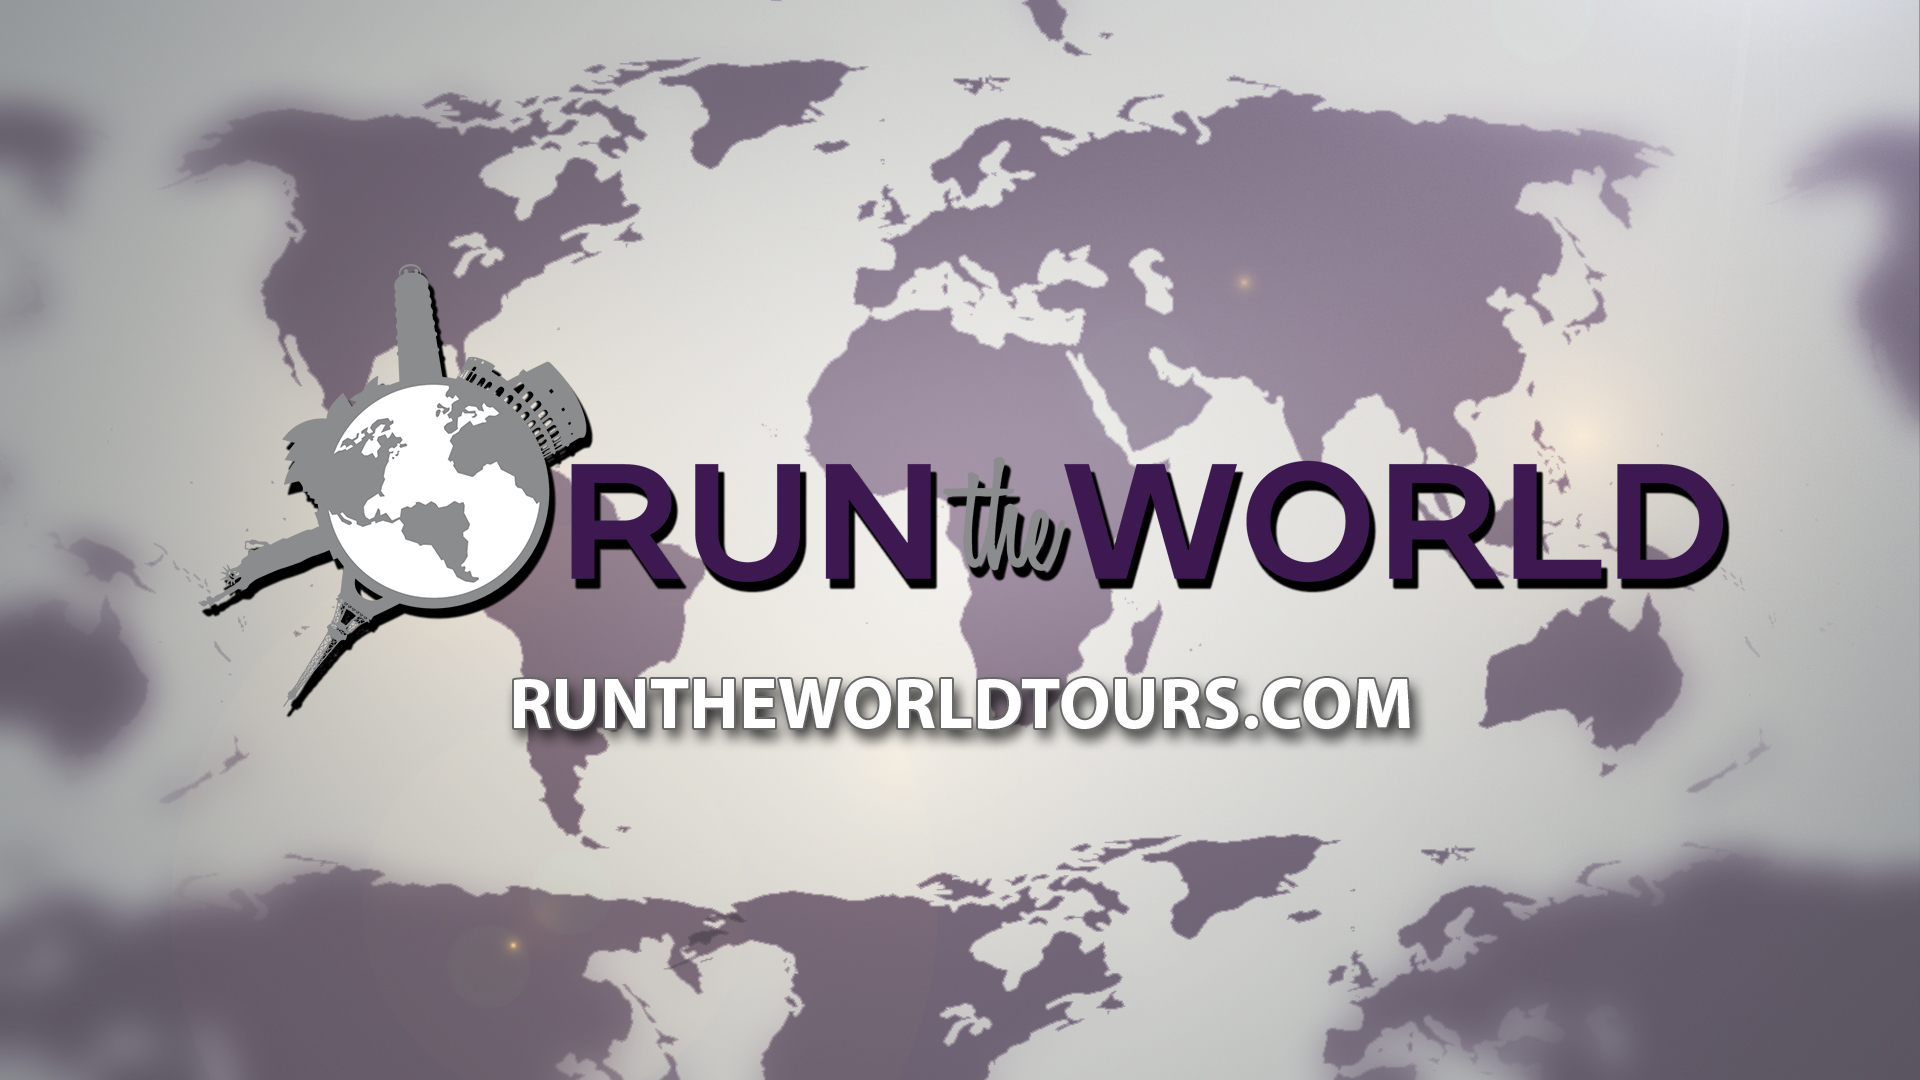 Runtheworld-Page